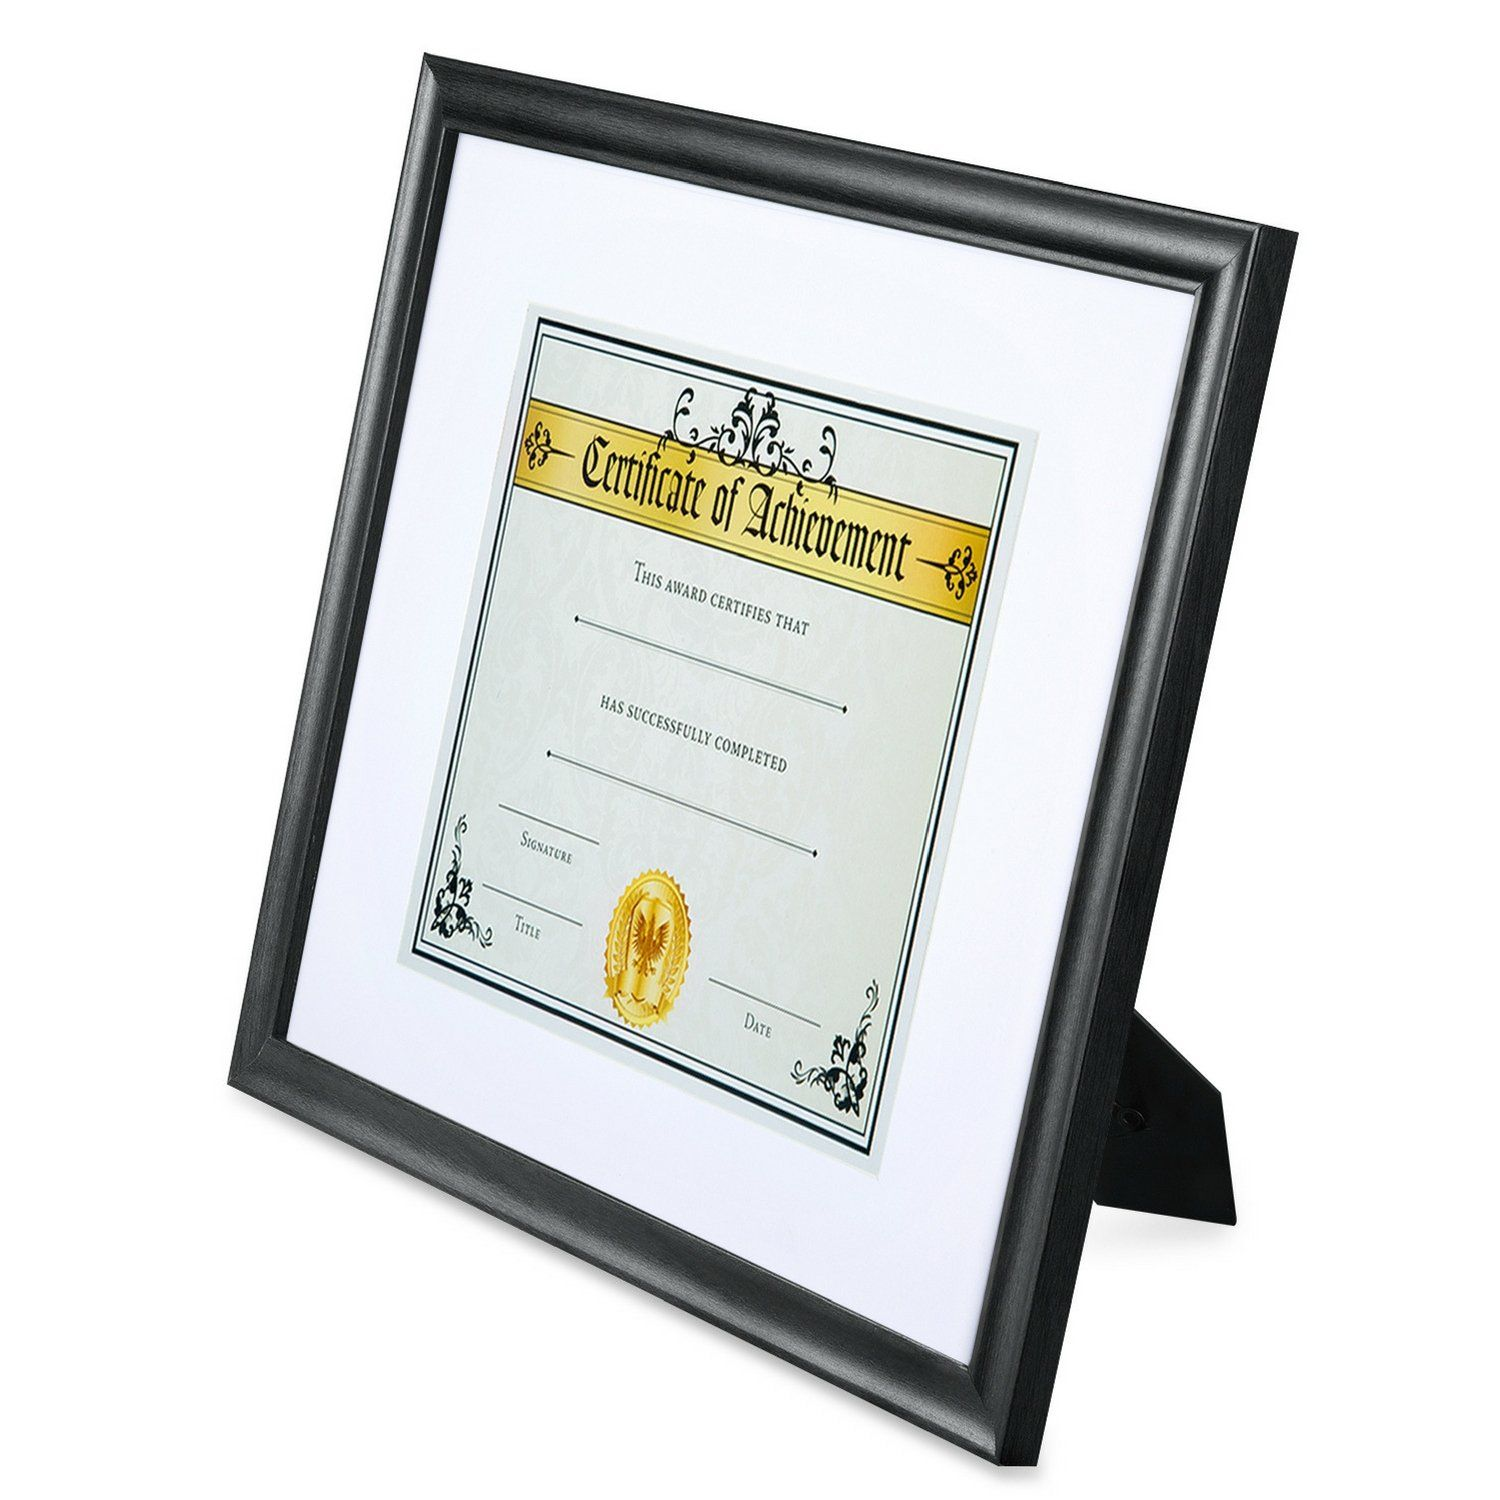 Icona Bay 11 By 14 Picture Frame 11x14 Matted To 8 5x11 Matte Black Wood Document Frame With Mat 2 Achievement C Picture Frame Mat Diploma Frame Document Frame